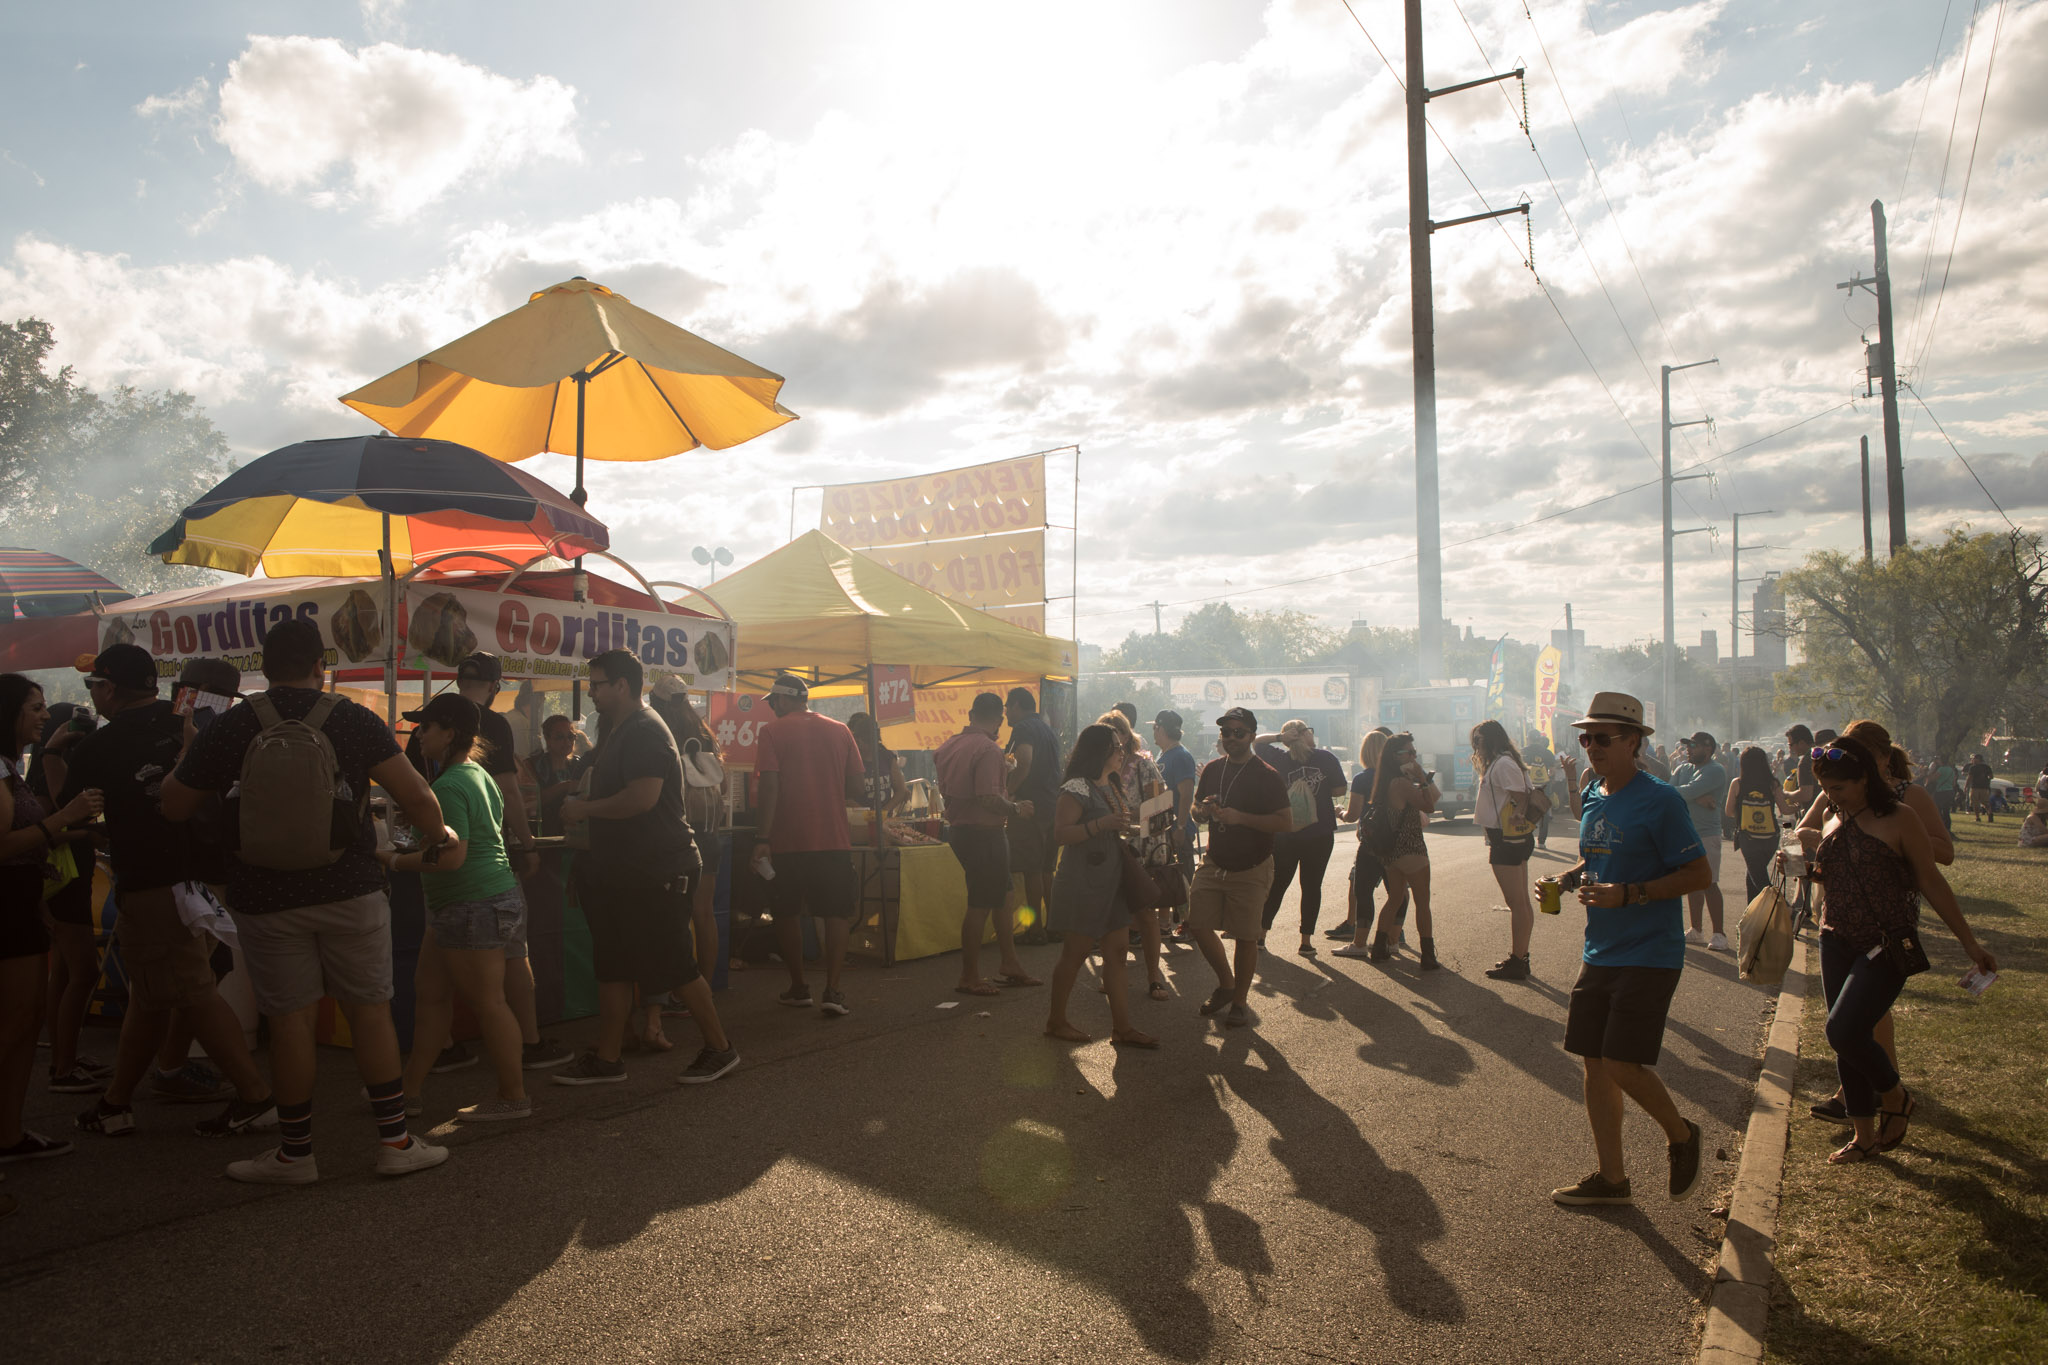 Crowds of people wait for food and beer at the San Antonio Beer Festival.